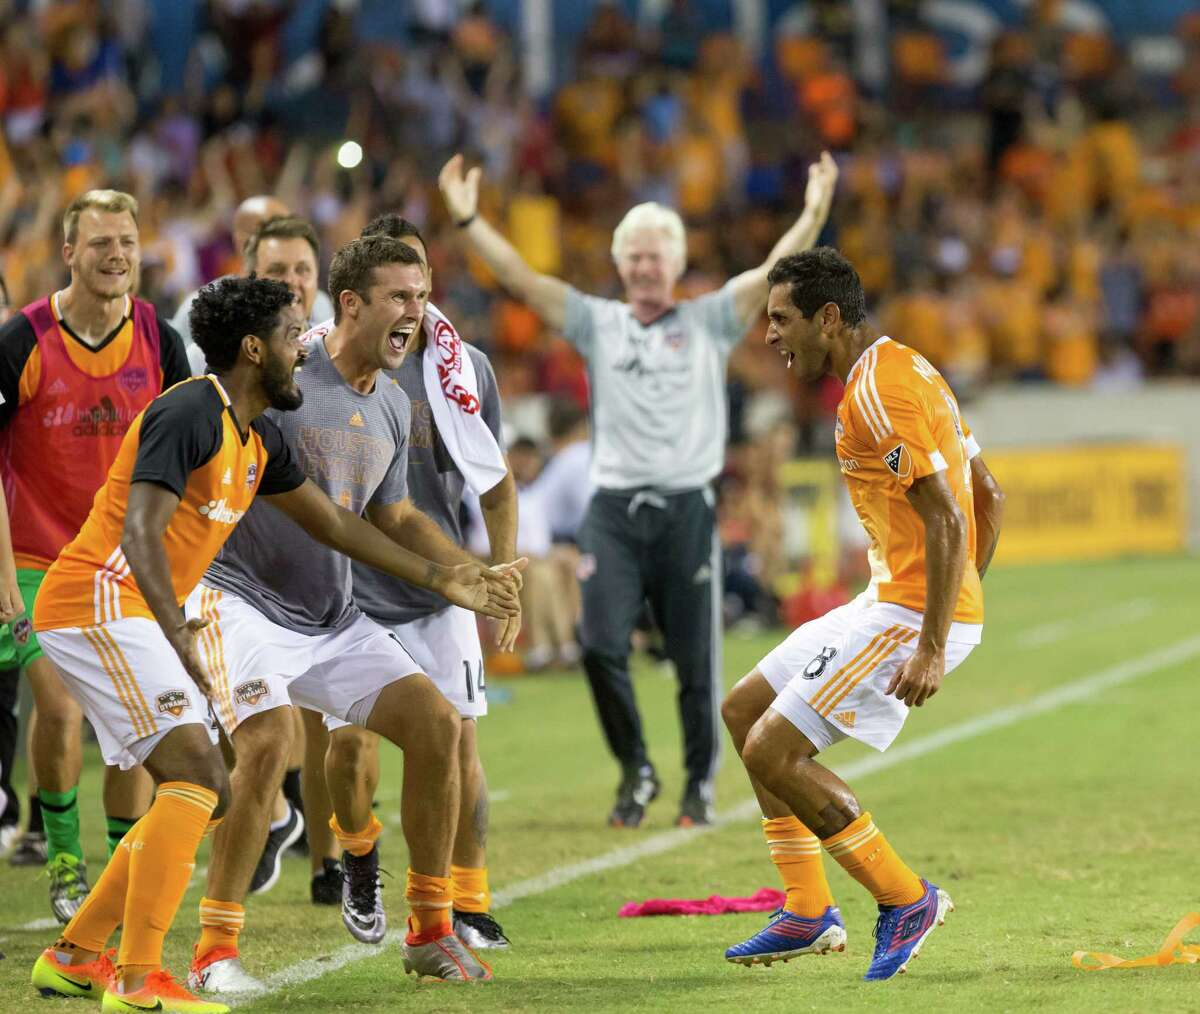 Houston Dynamo midfielder Cristian Maidana (8) celebrates with teammates after scoring in the free kick during the second half of action between the between the Houston Dynamo and the Philadelphia Union during an MLS soccer game at BBVA Compass, Saturday, July 02, 2016, in Houston. Houston Dynamo defeated Philadelphia Union 1-0. (Juan DeLeon/for the Houston Chronicle )